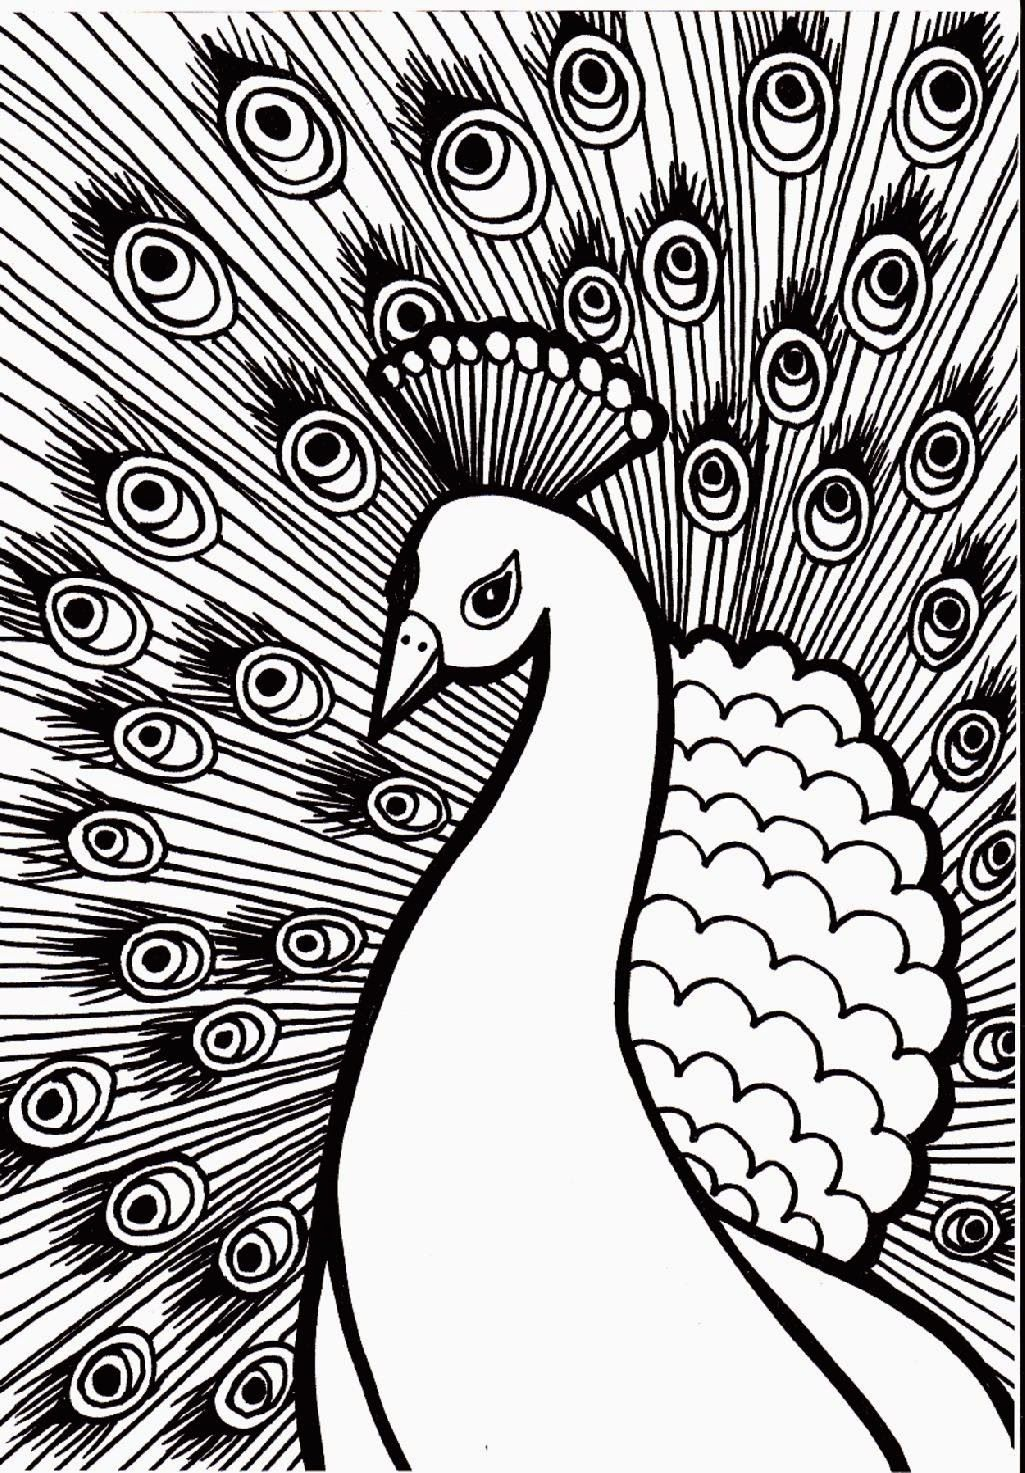 Paisley Print Coloring Pages - Coloring Home